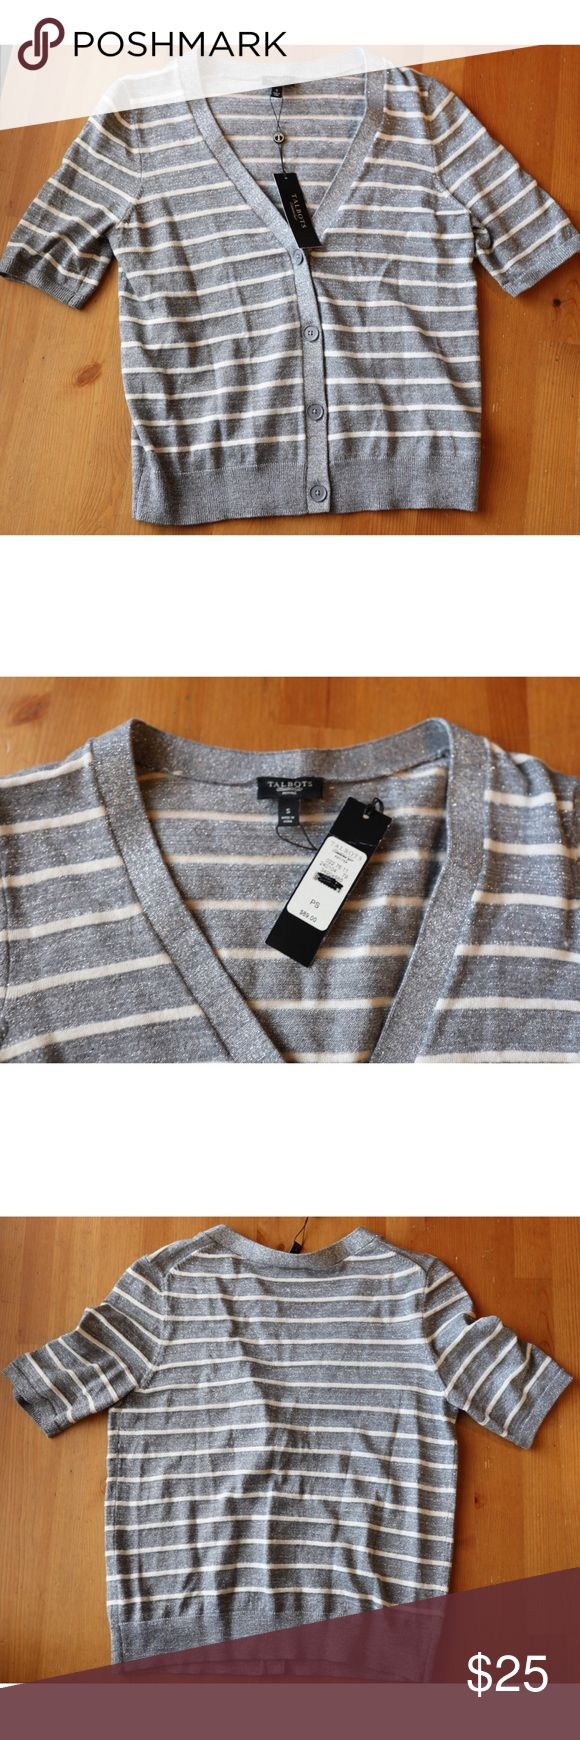 """Talbots Striped Metallic Cardigan Sweater S Talbots Striped Metallic Cardigan Sweater, S.   Laying flat it measures approximately: shoulder to bottom 20 1/2"""", armpit to armpit 17"""".  Excellent condition & NWT. Smoke free home. Thanks! Talbots Sweaters Cardigans"""